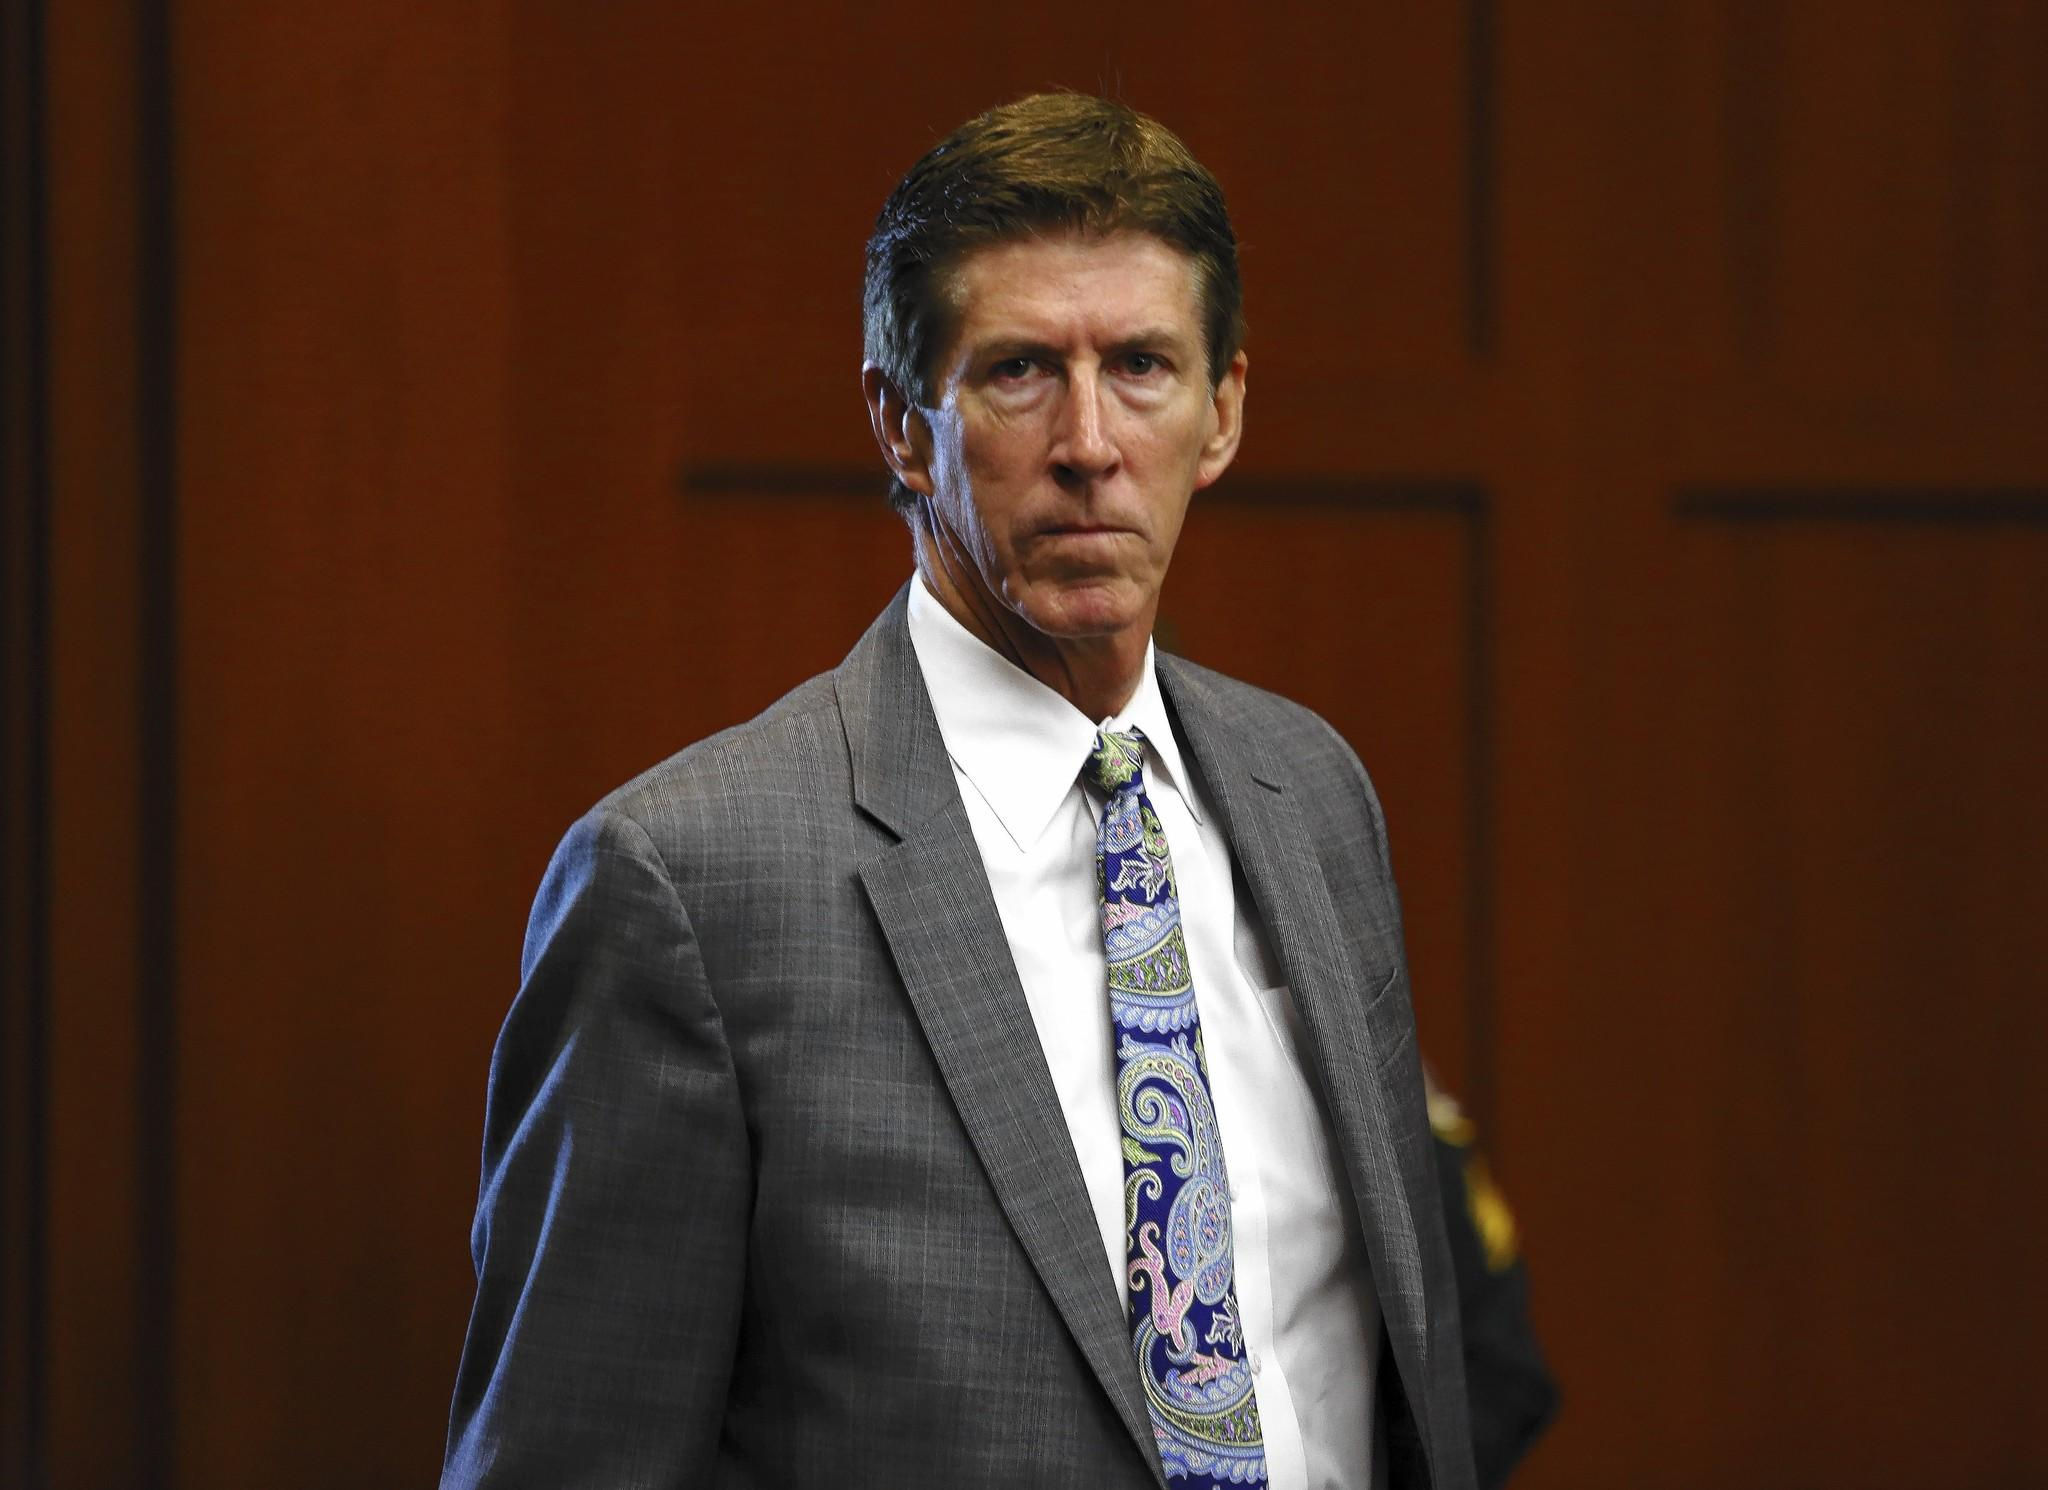 Defense attorney Mark O'Mara enters the courtroom at George Zimmerman's trial in June.